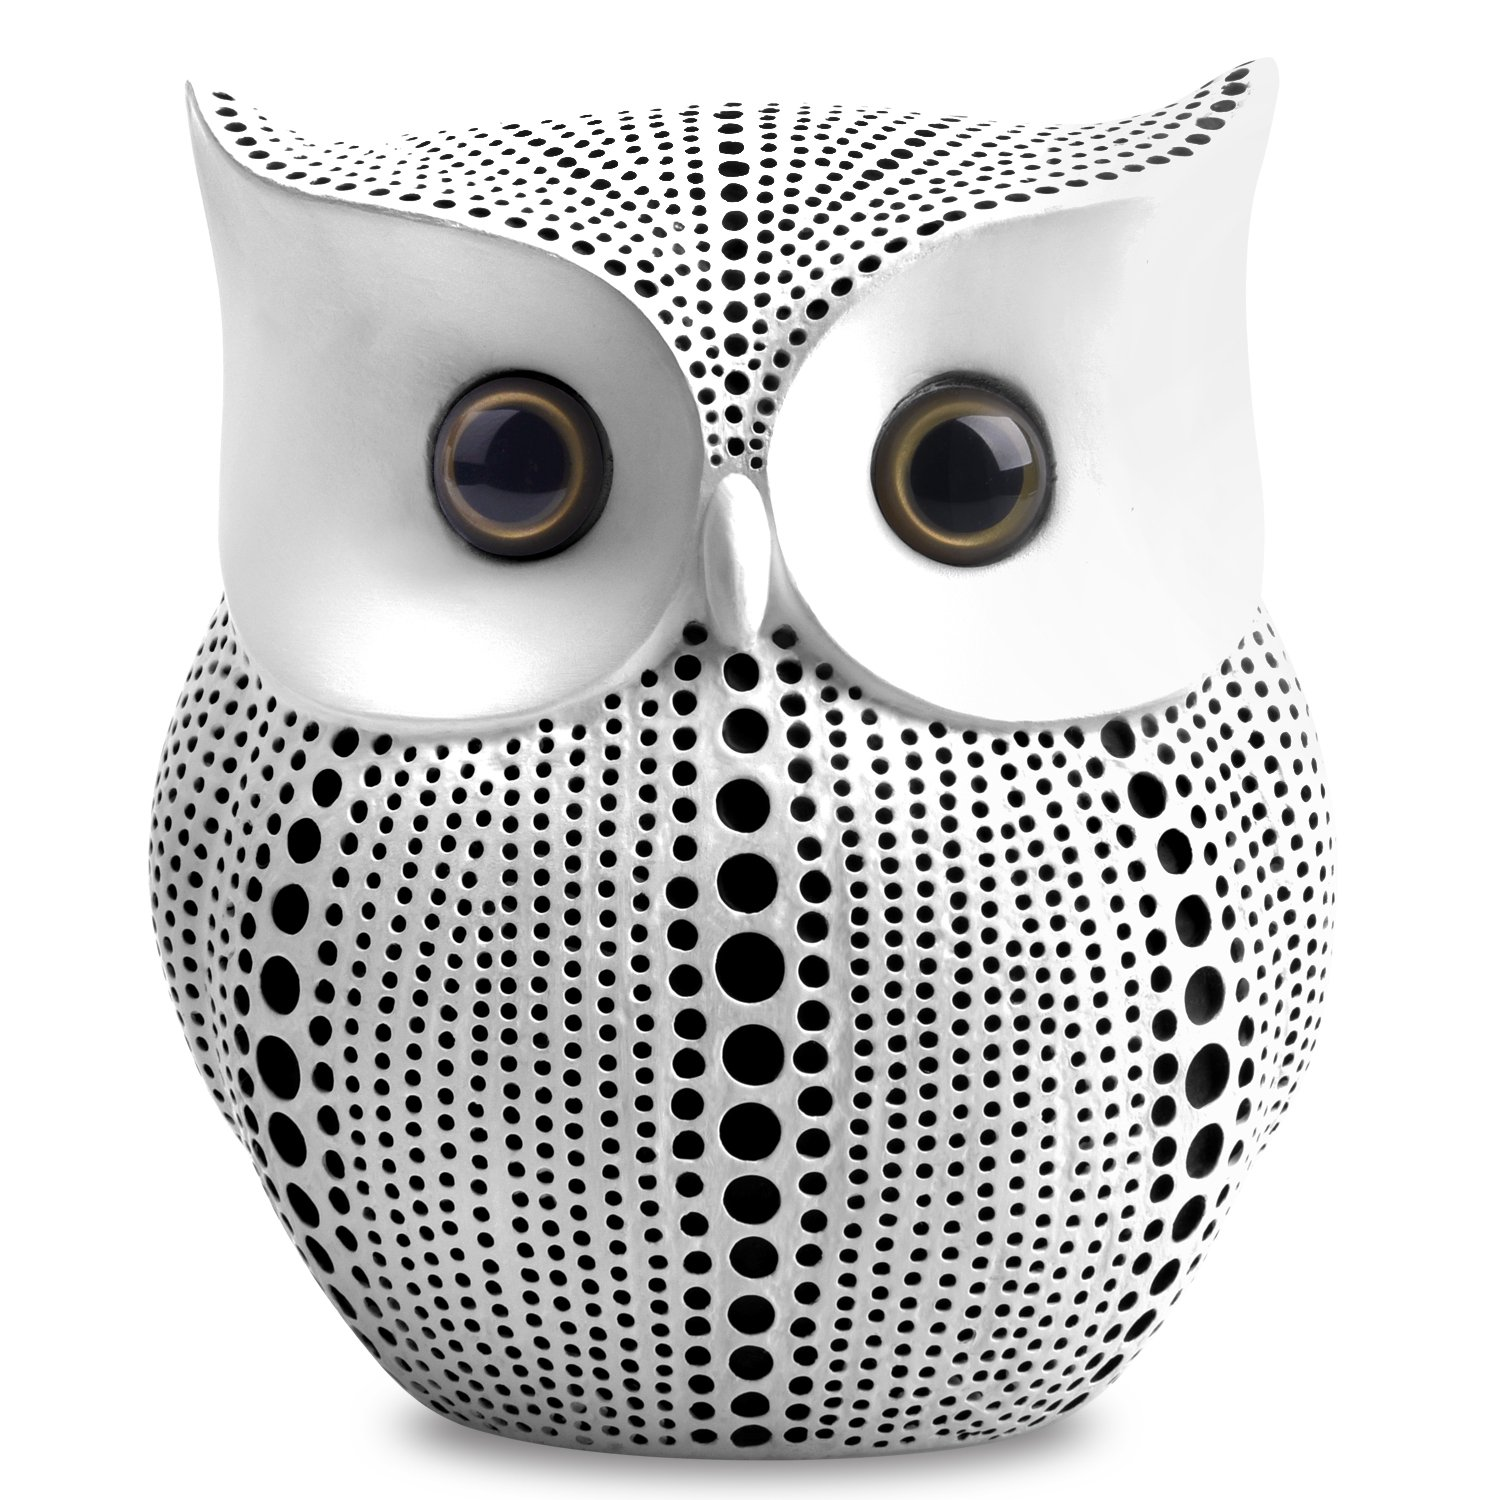 Owl Statue Decor (White) Small Crafted Buho Figurines for Home Decor Accents, Living Room Bedroom Office Decoration, Buhos Bookself TV Stand Decor - Animal Sculptures Collection BFF for Owls Lovers by APPS2Car